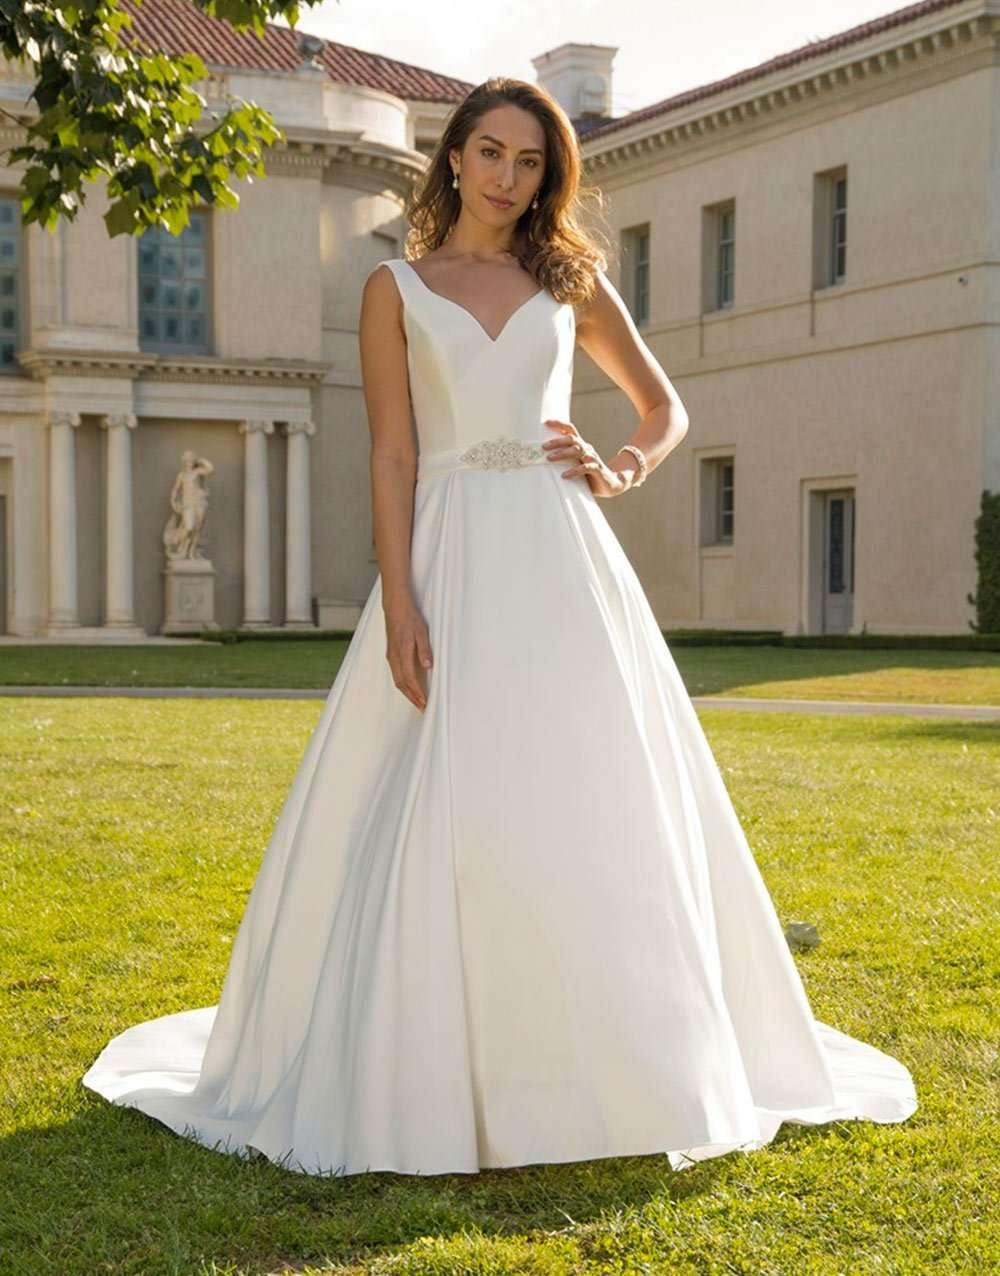 Adriana PLUS - Adore Bridal and Occasion Wear